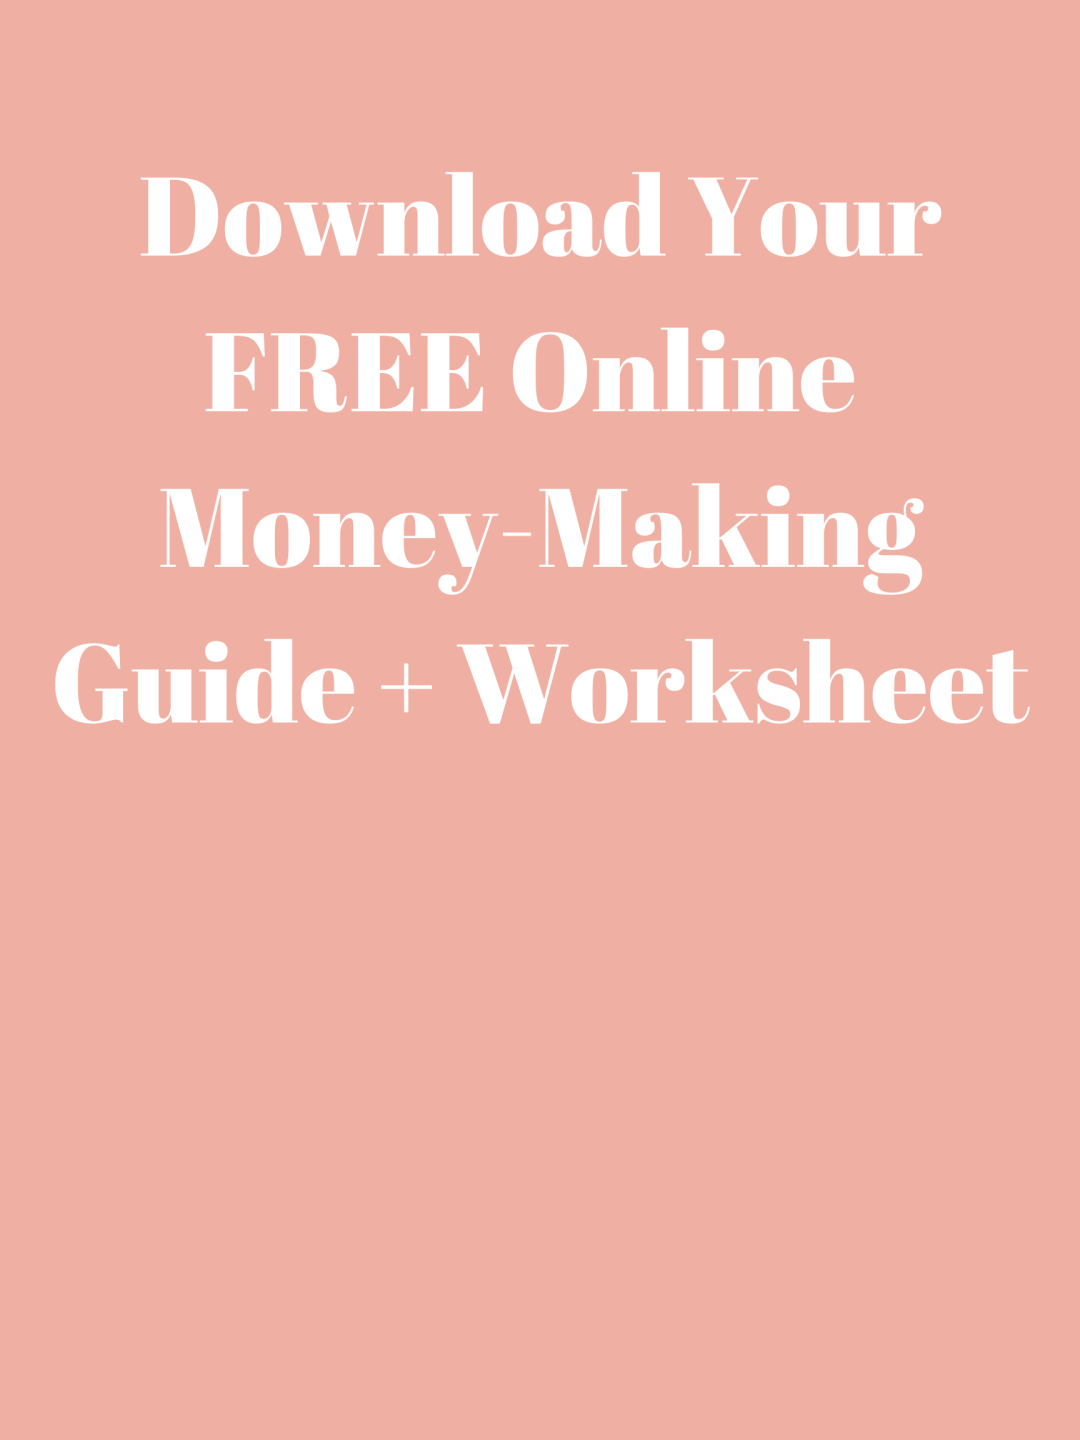 download your free online money making guide +worksheet